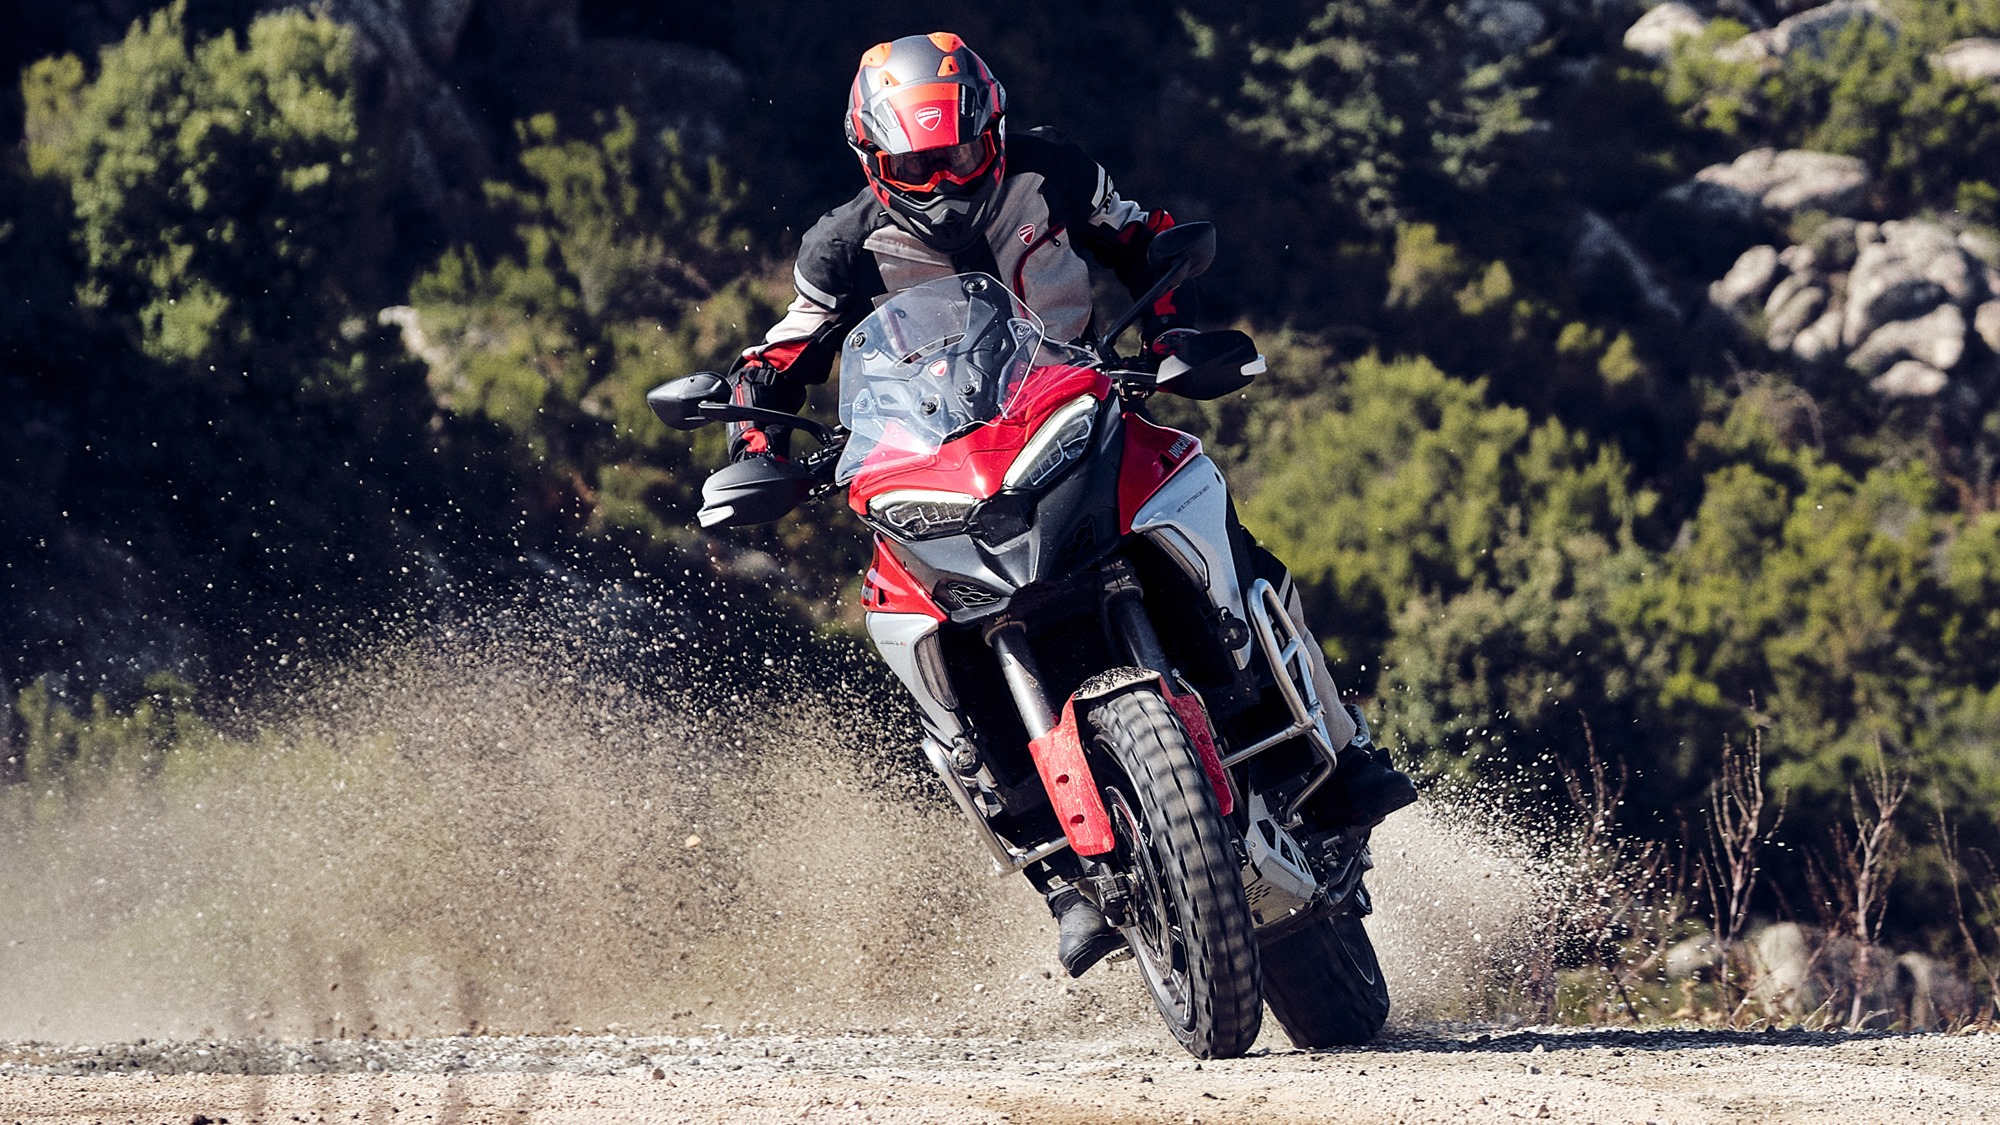 Ducati Multistrada V4 HD wallpapers